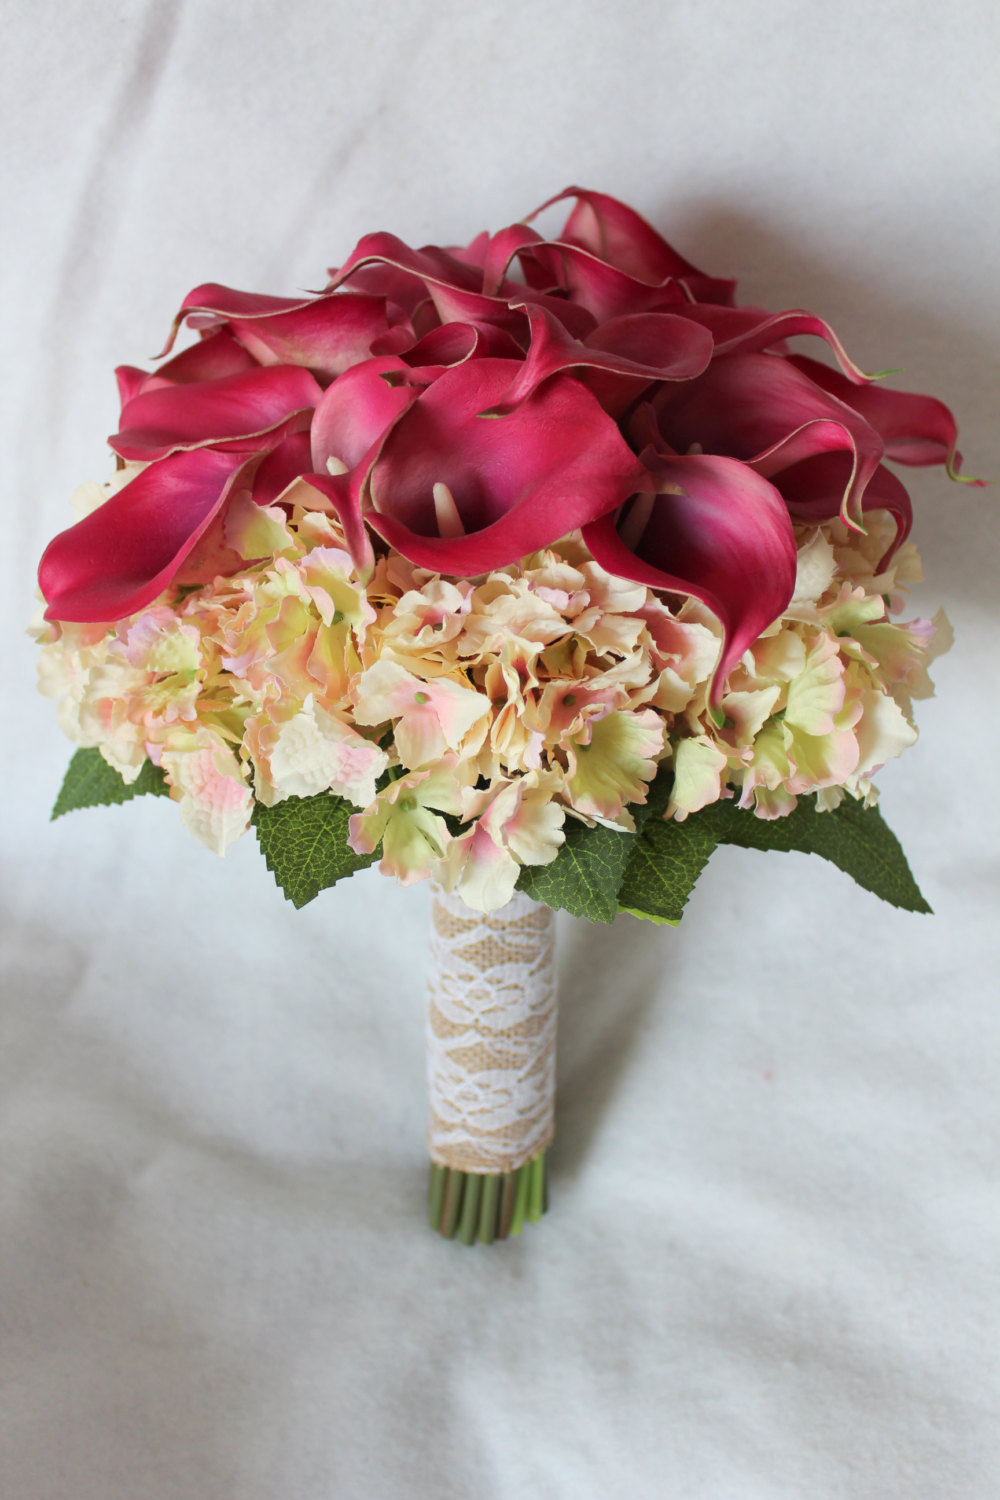 minneapolis-silk-florist-Calla-Lily-and-Hydrangea-Silk-Wedding-Flower-Bouquet-in-Raspberry-and-Cream-Pink-with-Burlap-and-Lace-Wrap-&-Matching-Boutonniere.jpg